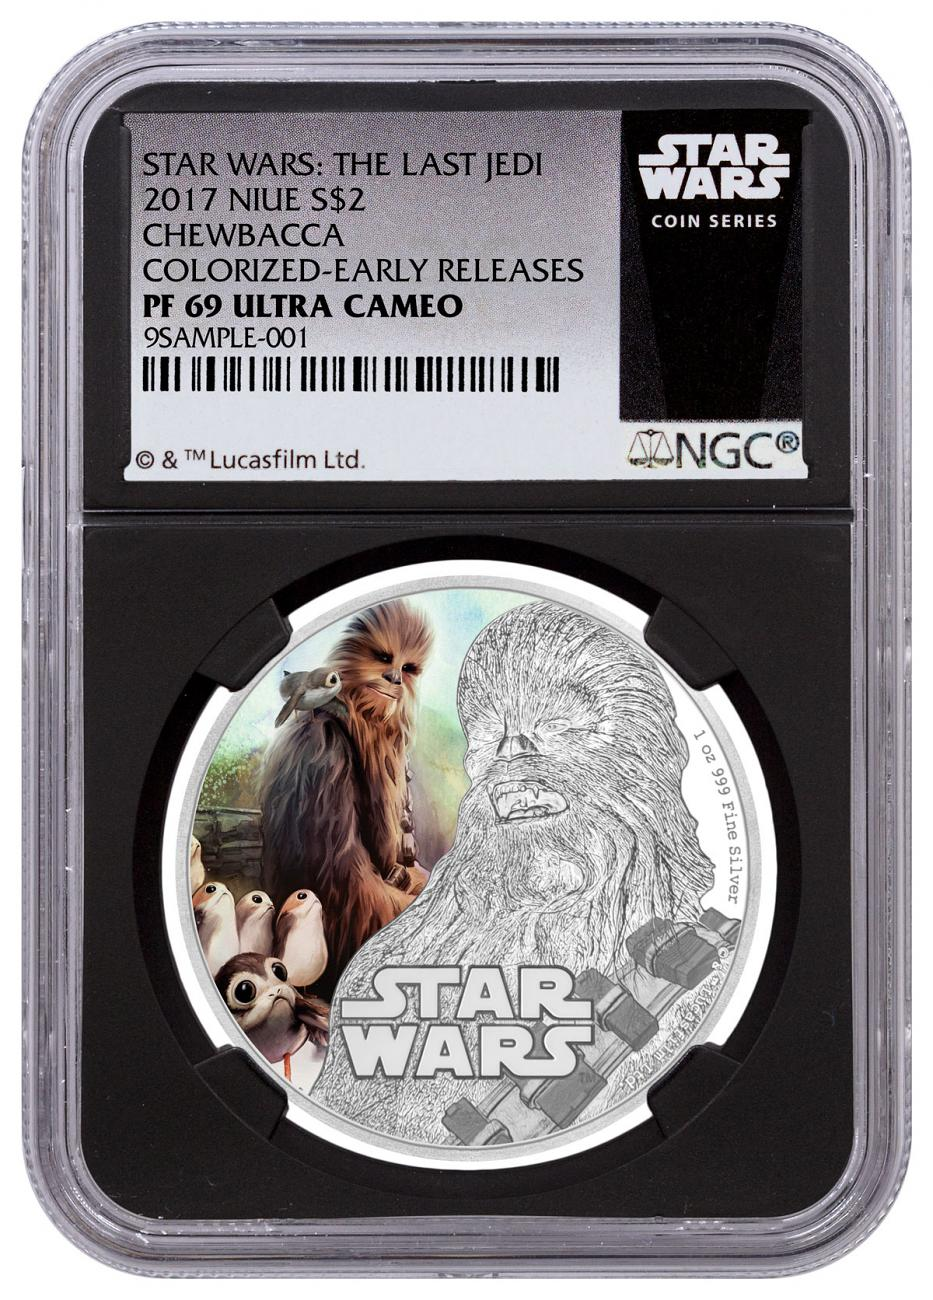 2017 Niue Star Wars: The Last Jedi - Chewbacca 1 oz Silver Colorized Proof $2 Coin NGC PF69 UC ER Black Core Holder Exclusive Star Wars Label